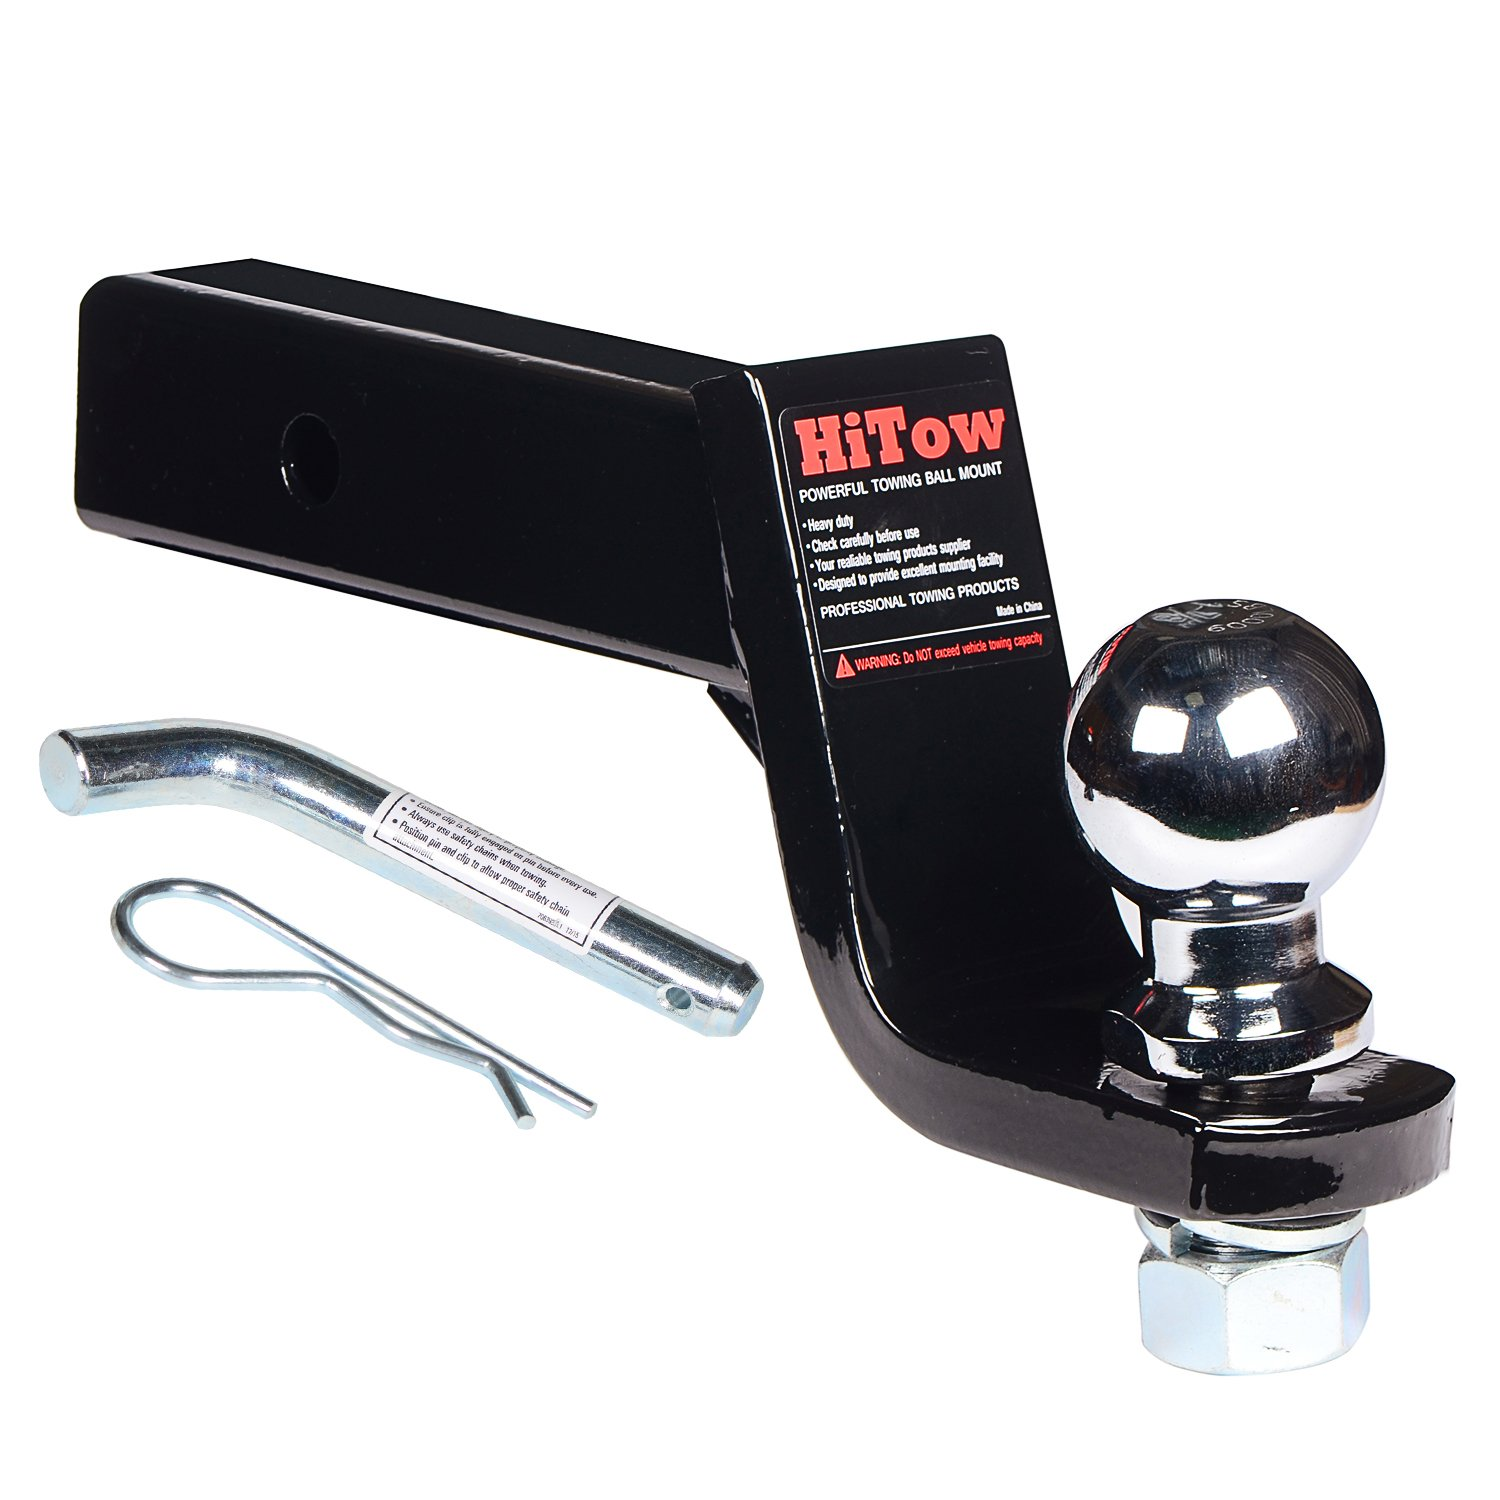 HiTow Trailer Hitch Loaded Ball Mount Class II 4' Drop with 1-7/8' Hitch Ball & 5/8' Pin Kit (GTW 3, 500 lbs) 4333192238